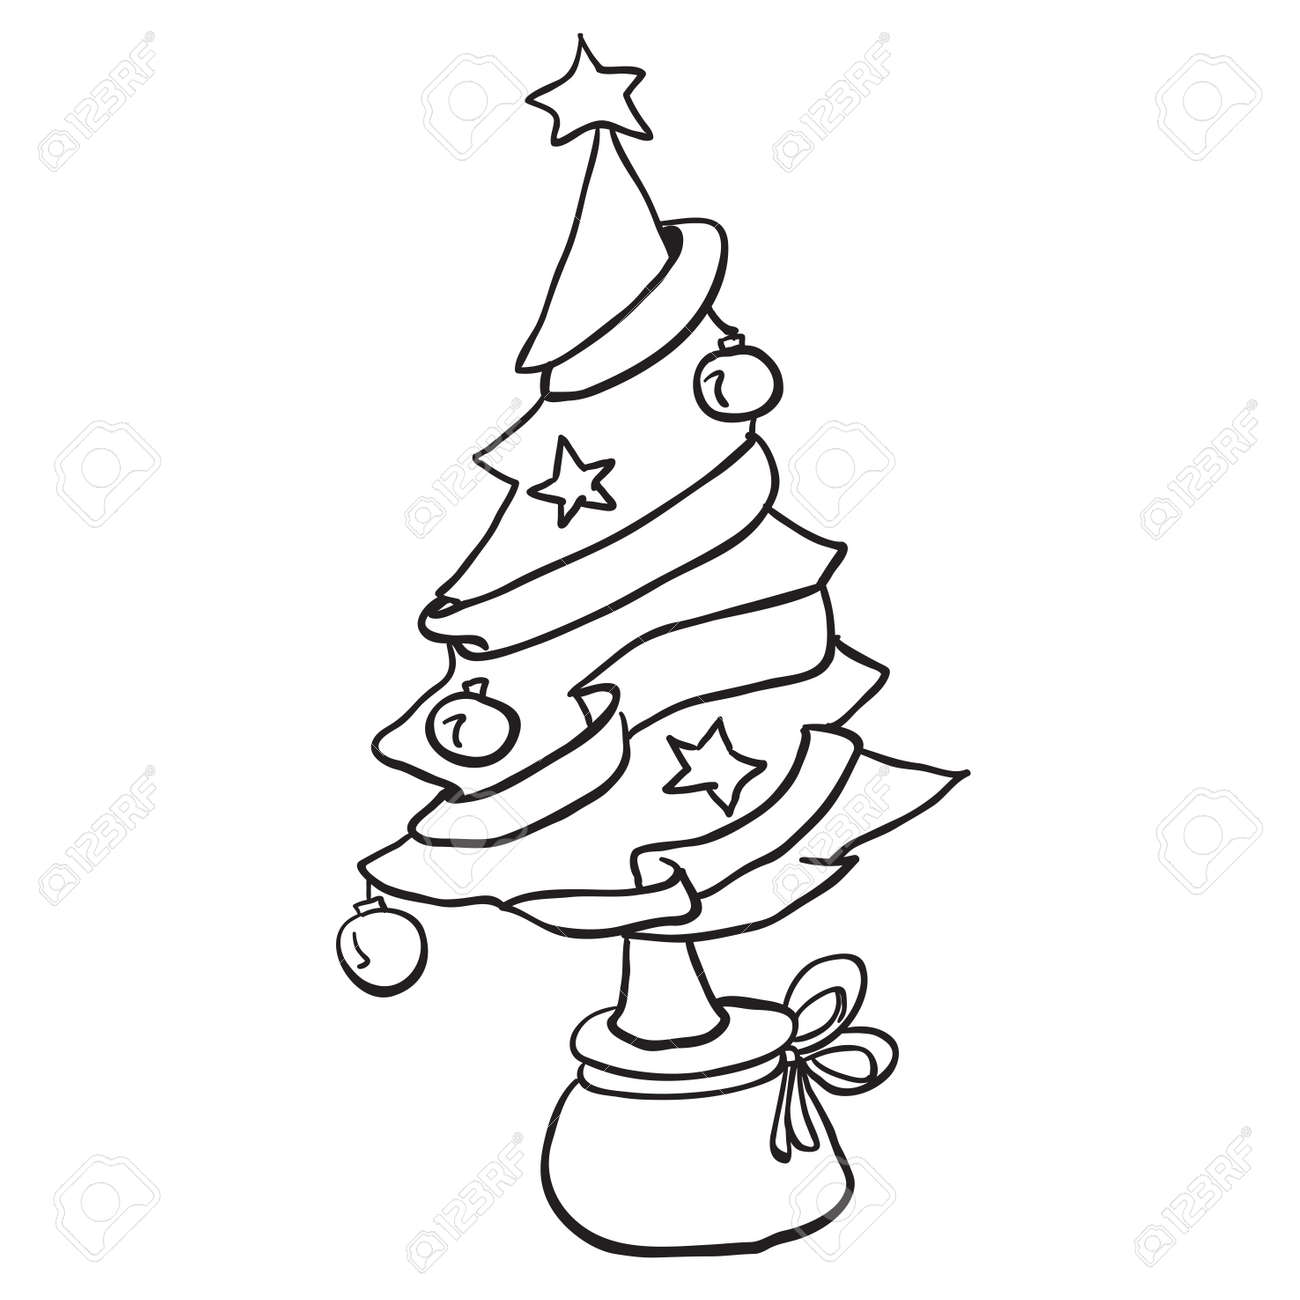 55+ Christmas Tree Cartoon Images Black And White